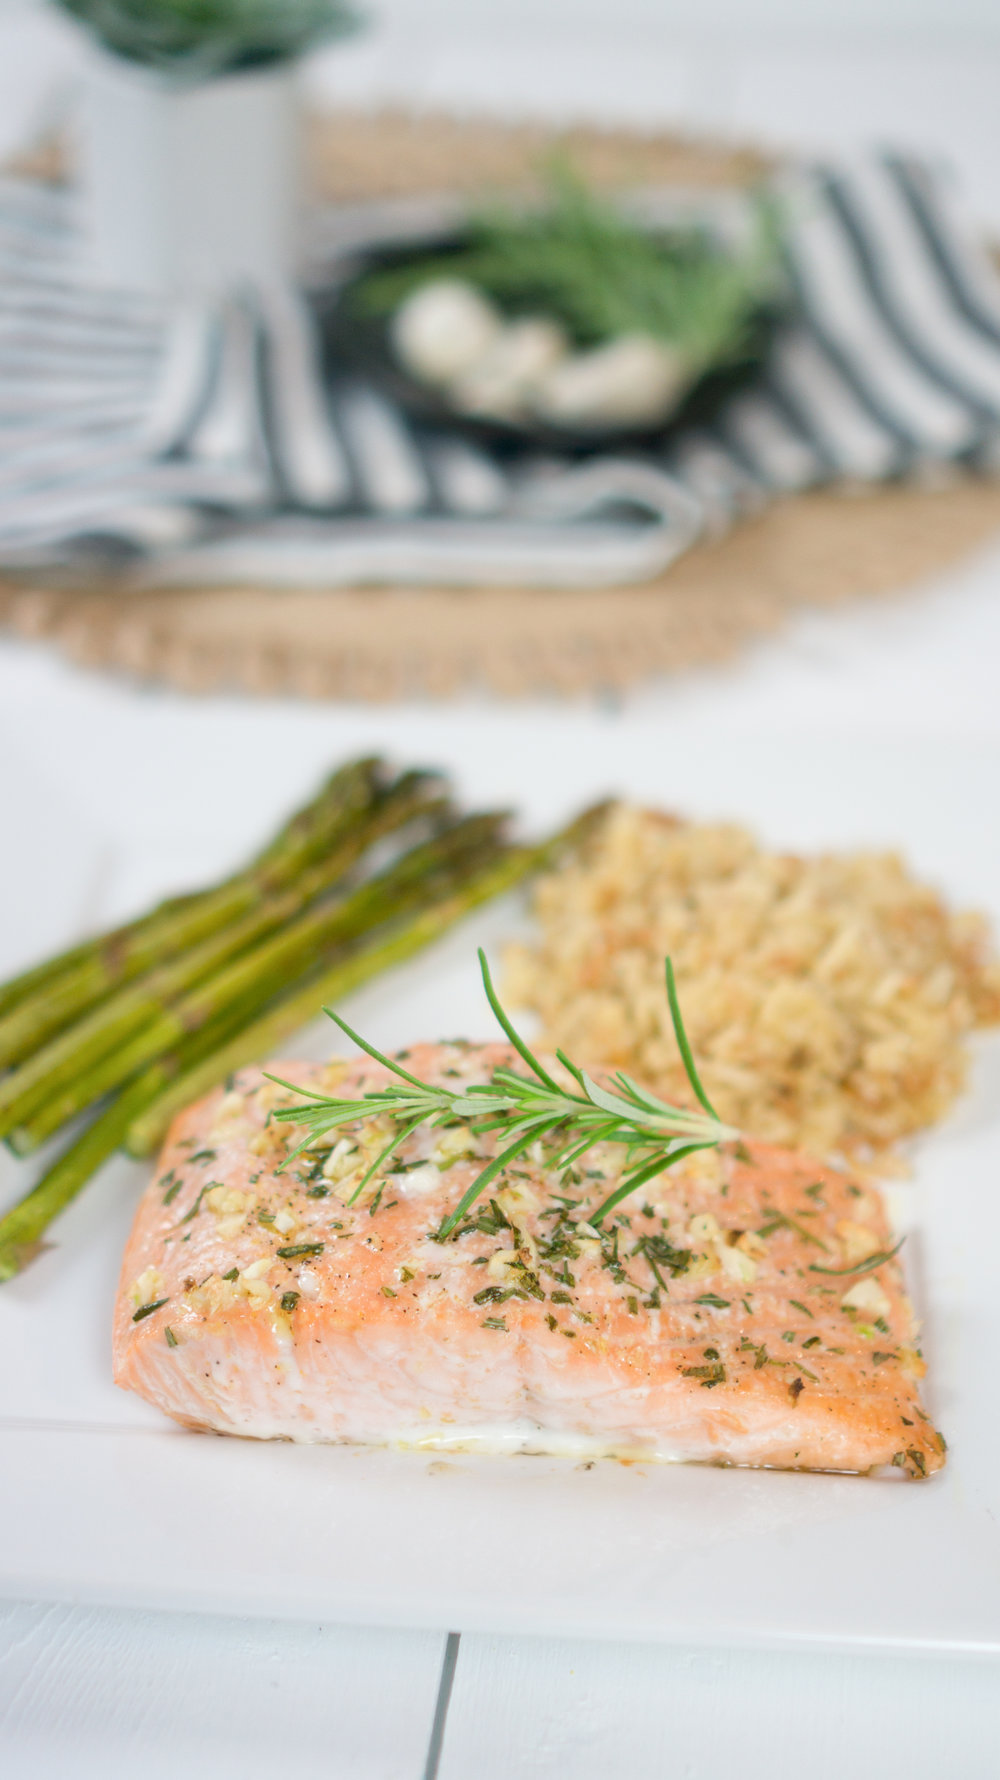 Quick and Easy 15 Minute Garlic and Rosemary Salmon